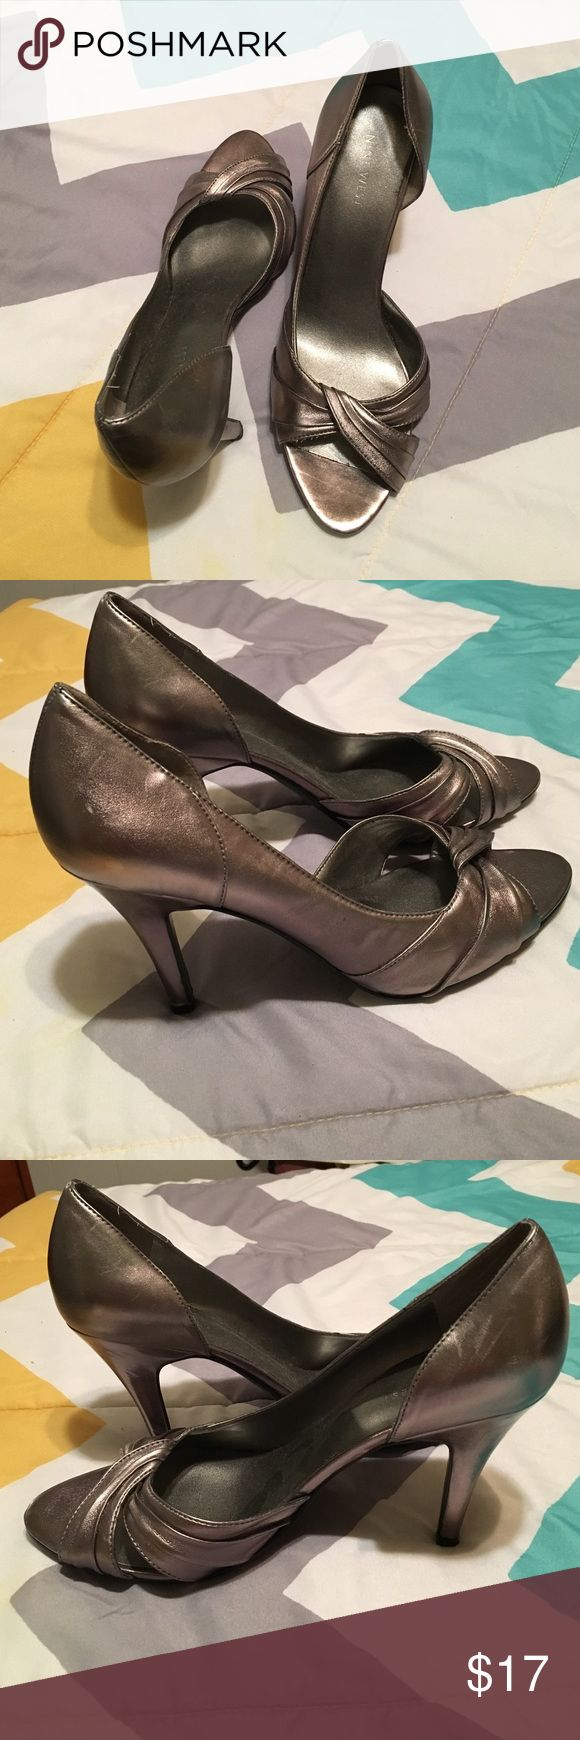 Peep toe pewter pumps Peep toe pumps Nine West Shoes Heels